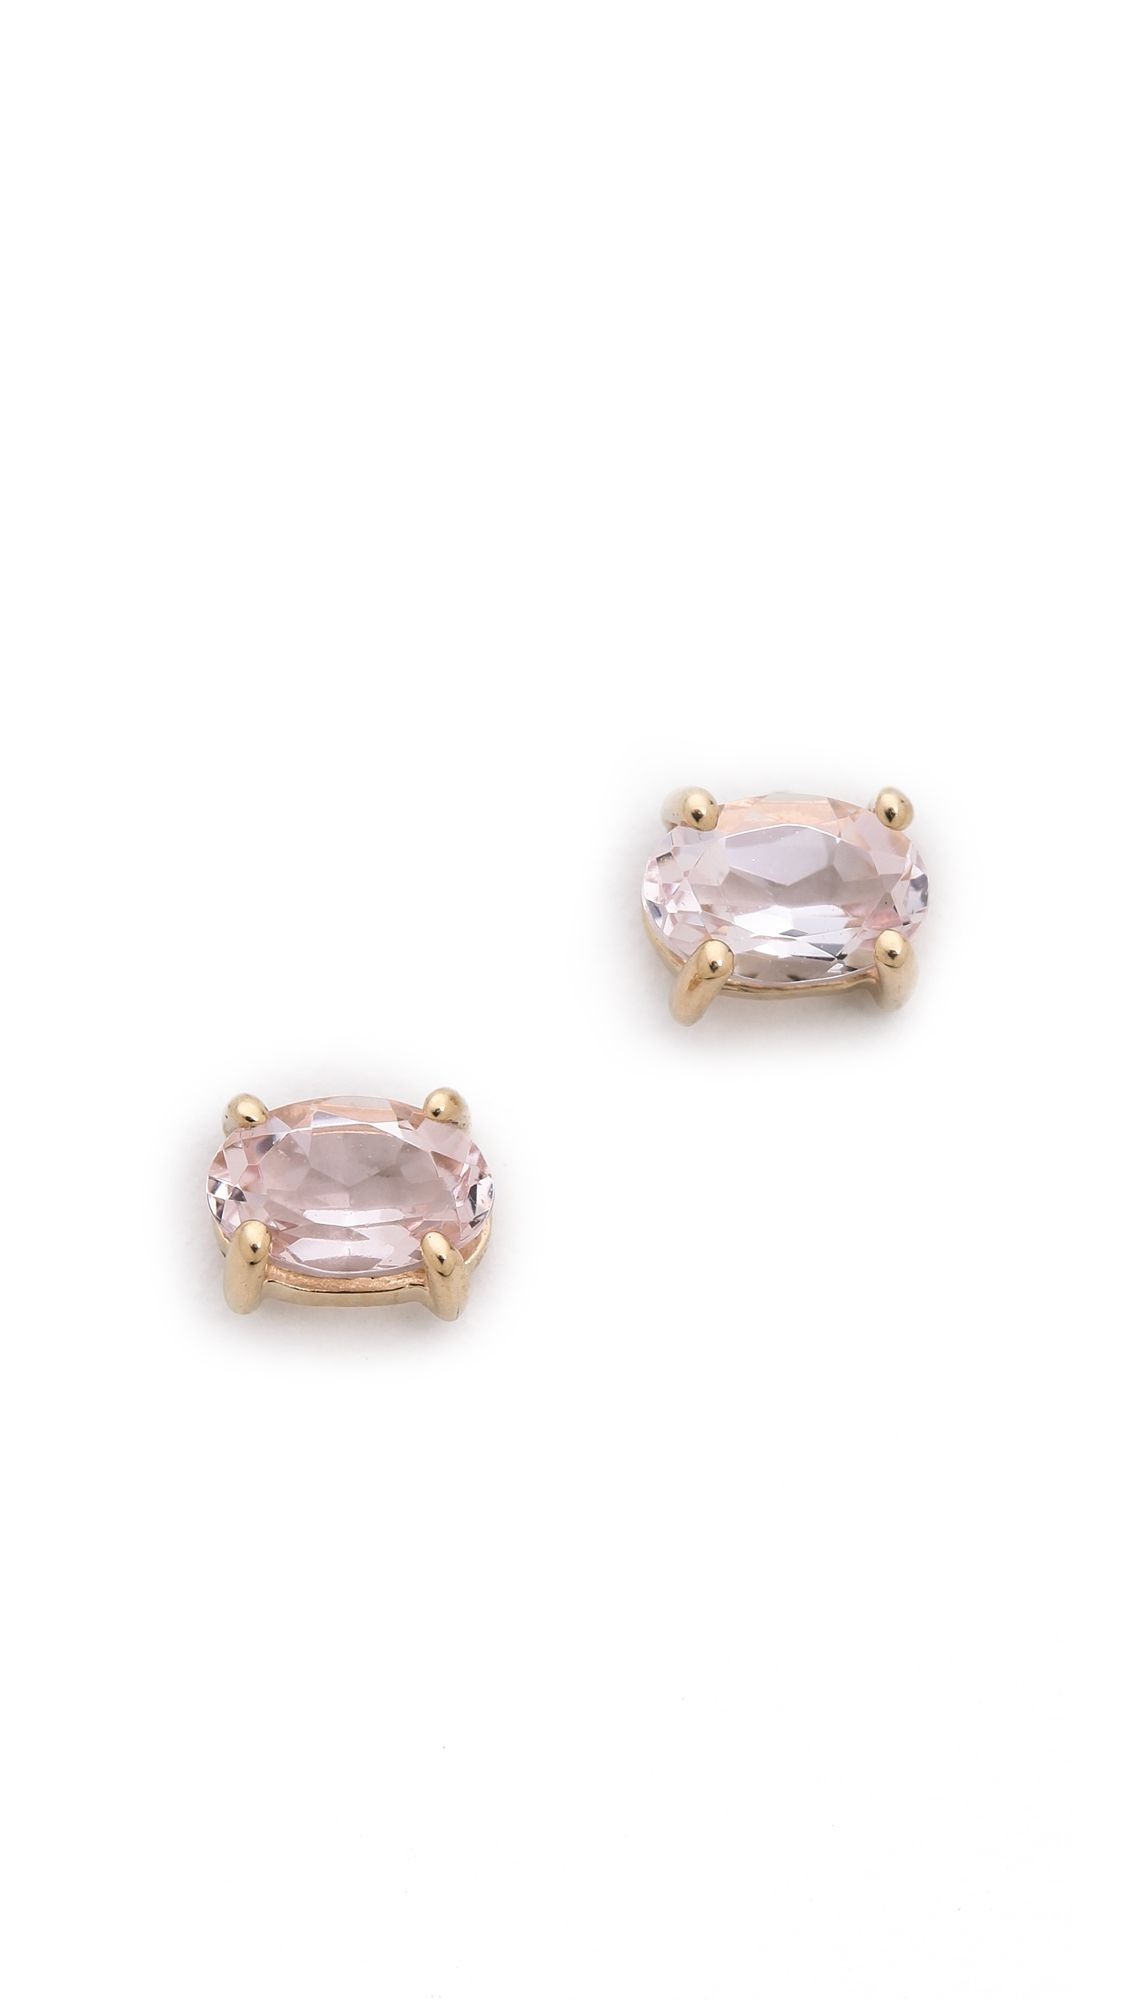 s tw morganite macy cushion fullscreen t in w diamond view gold designer earrings stud rose lyst jewelry ct macys